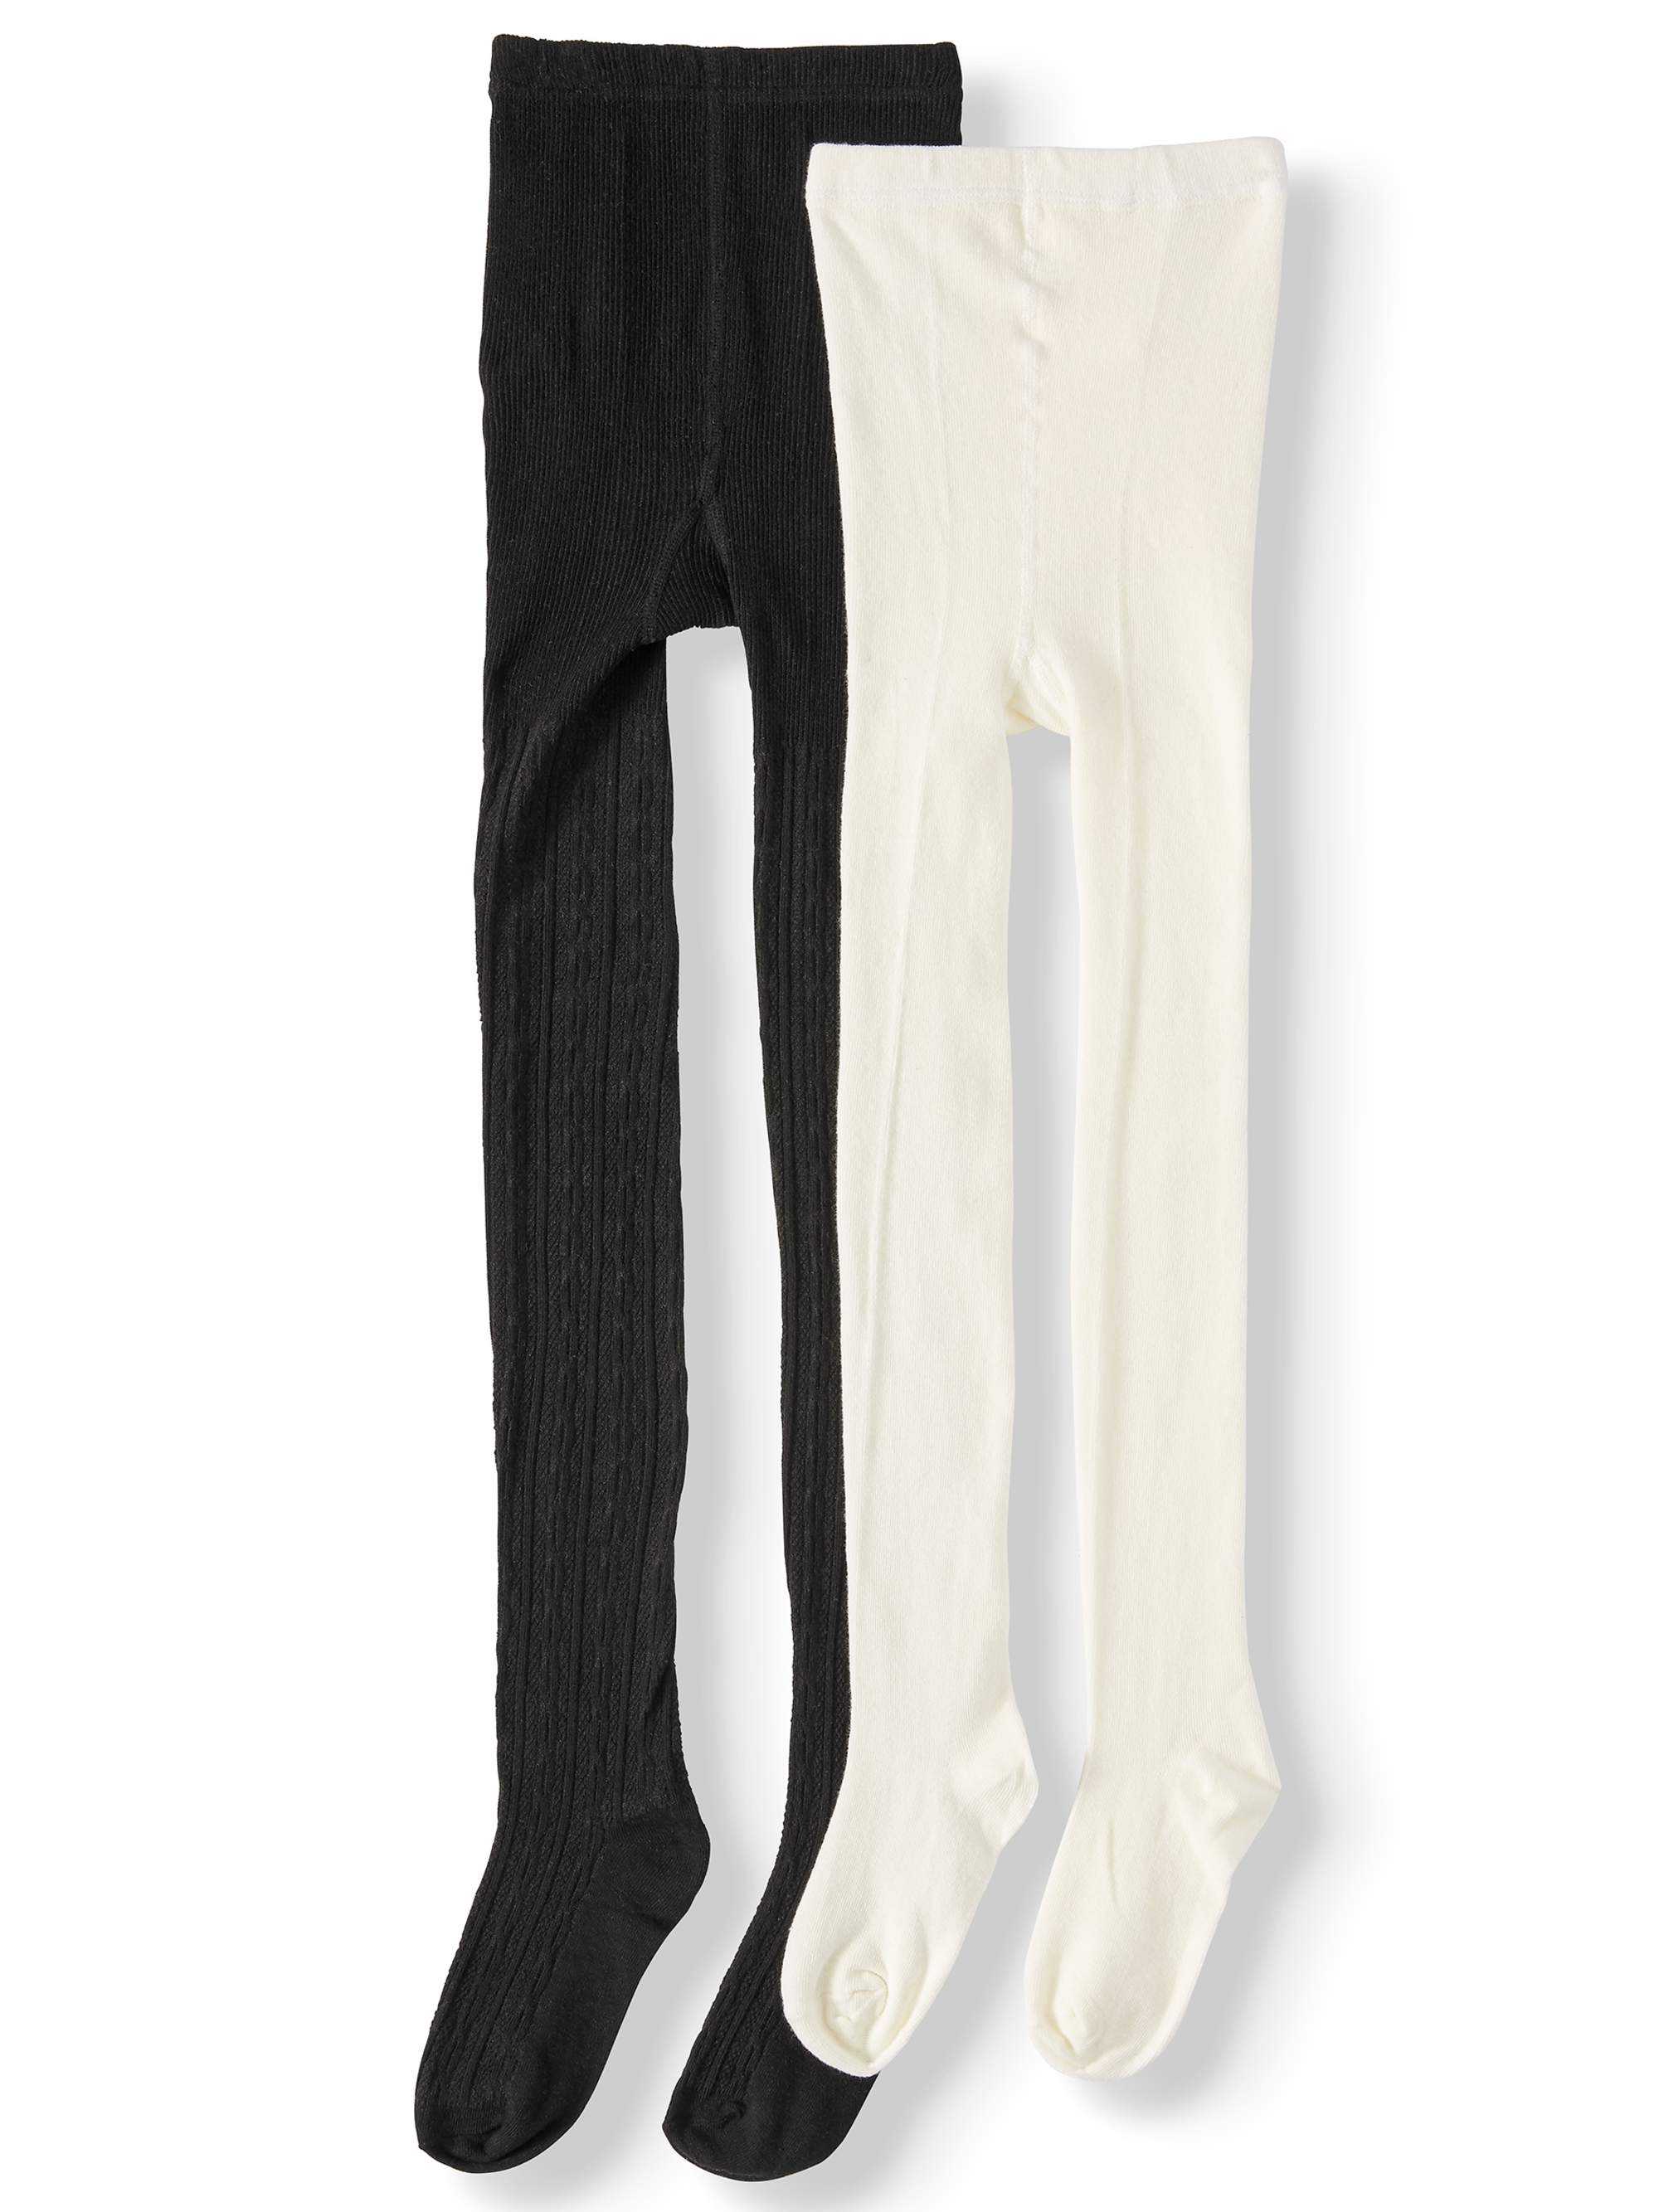 Wonder Nation Cable Heavyweight Cotton Tights, 2 Pack